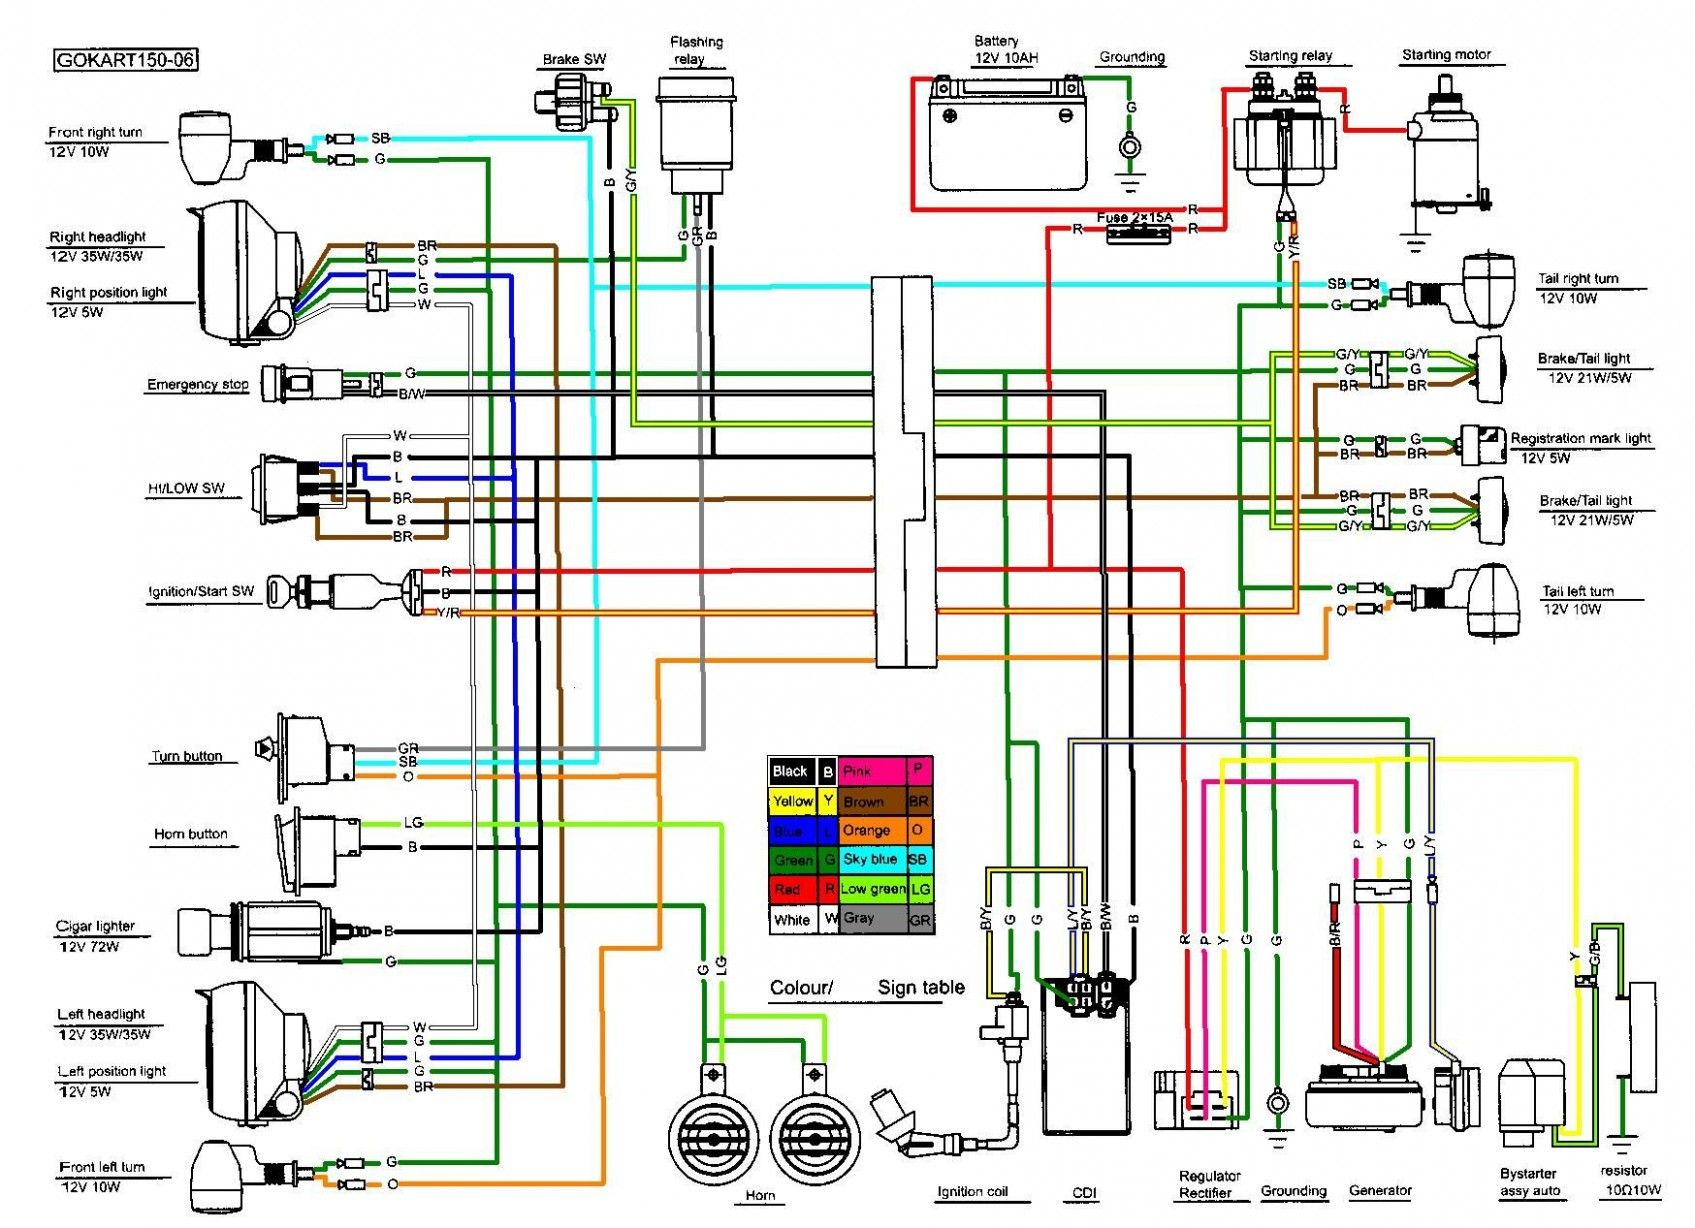 Gy5 Engine Diagram Not Working in 2020 | 150cc go kart, 150cc scooter,  Motorcycle wiringPinterest